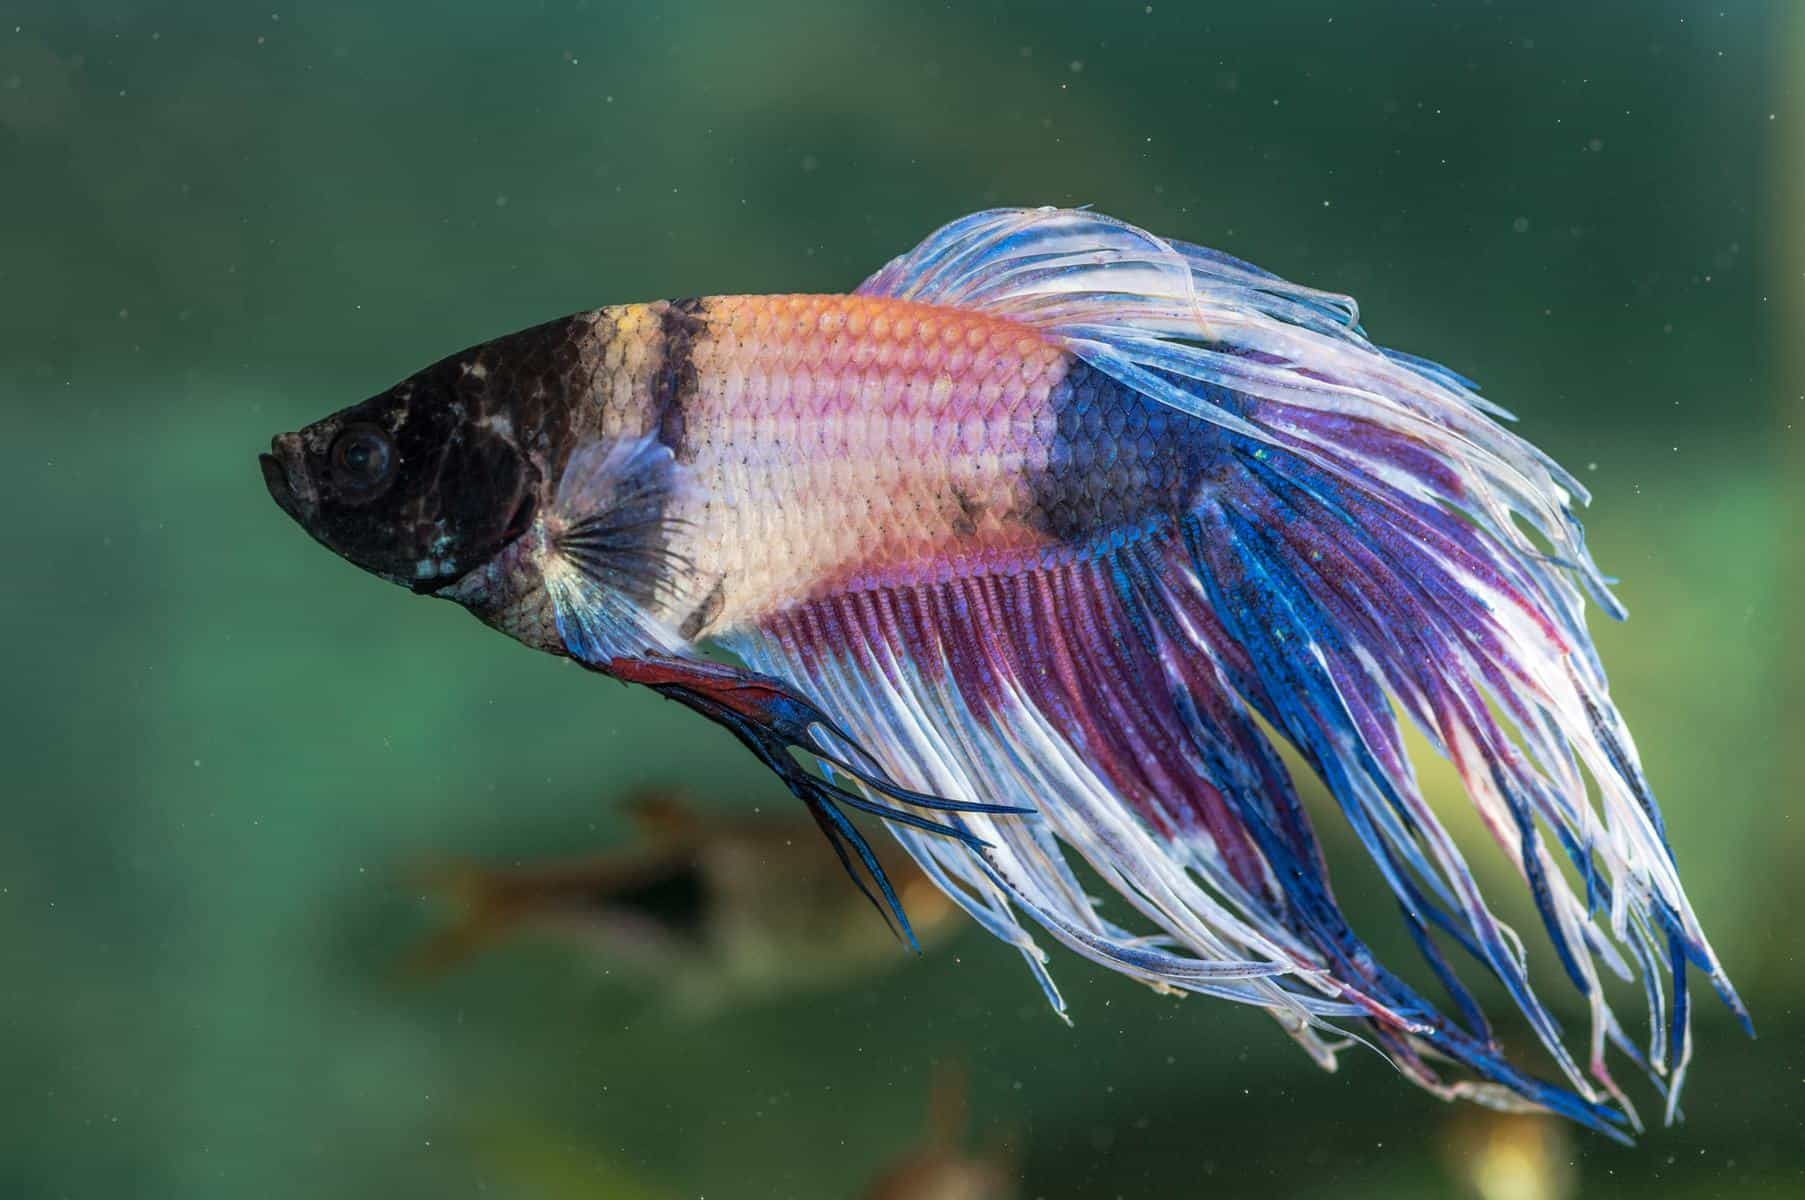 betta fish having seizures